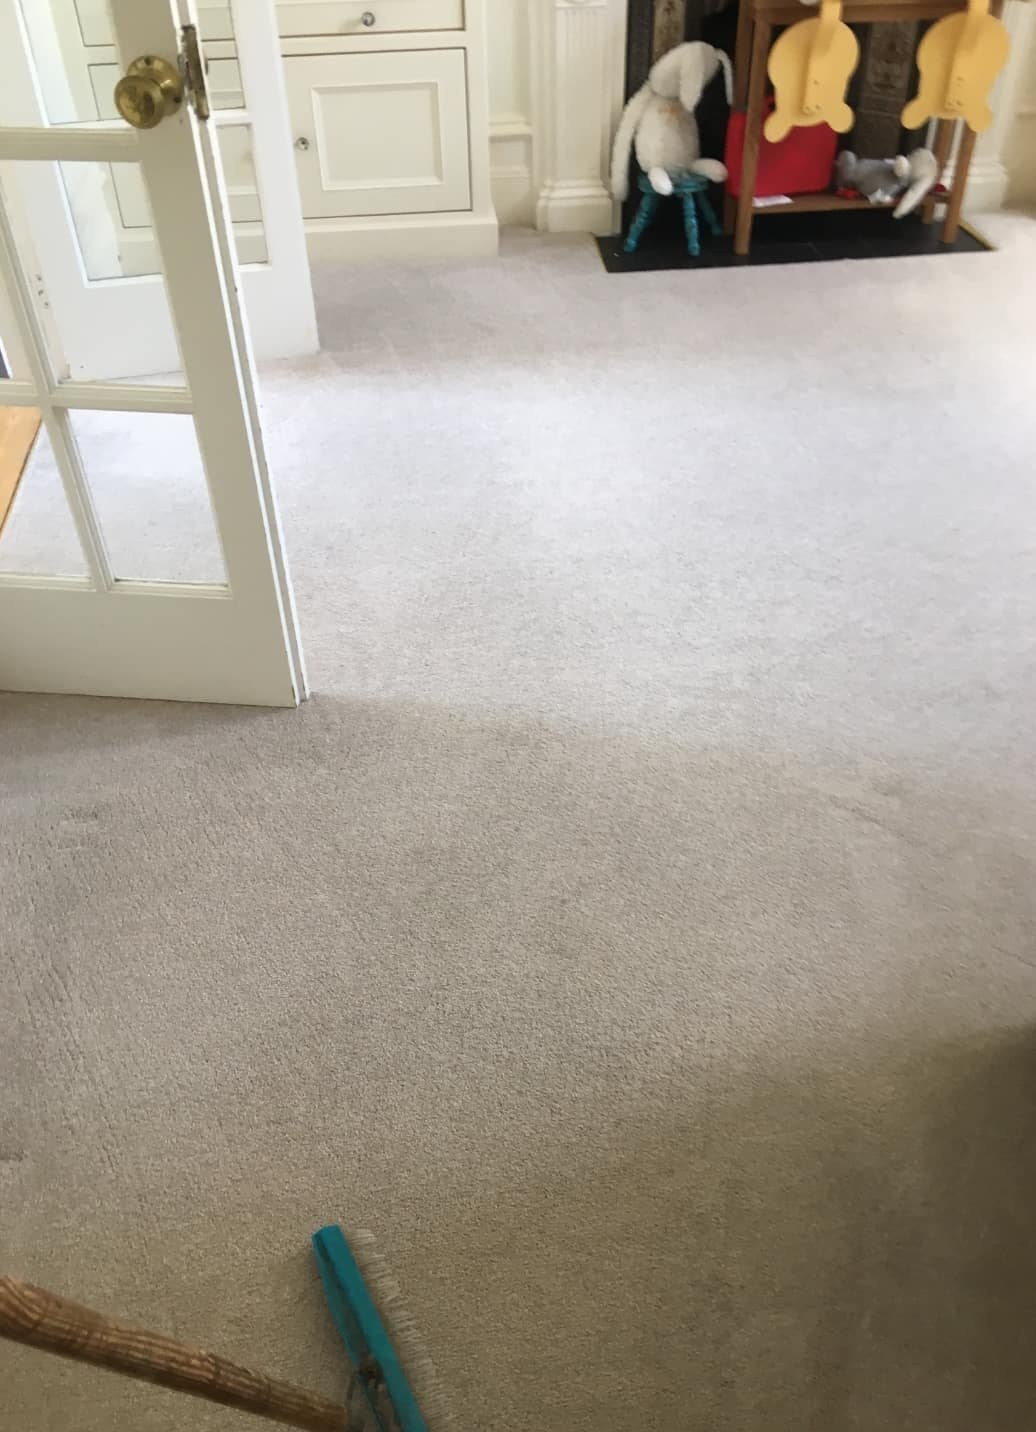 Carpet Cleaning Before & After Photos 19